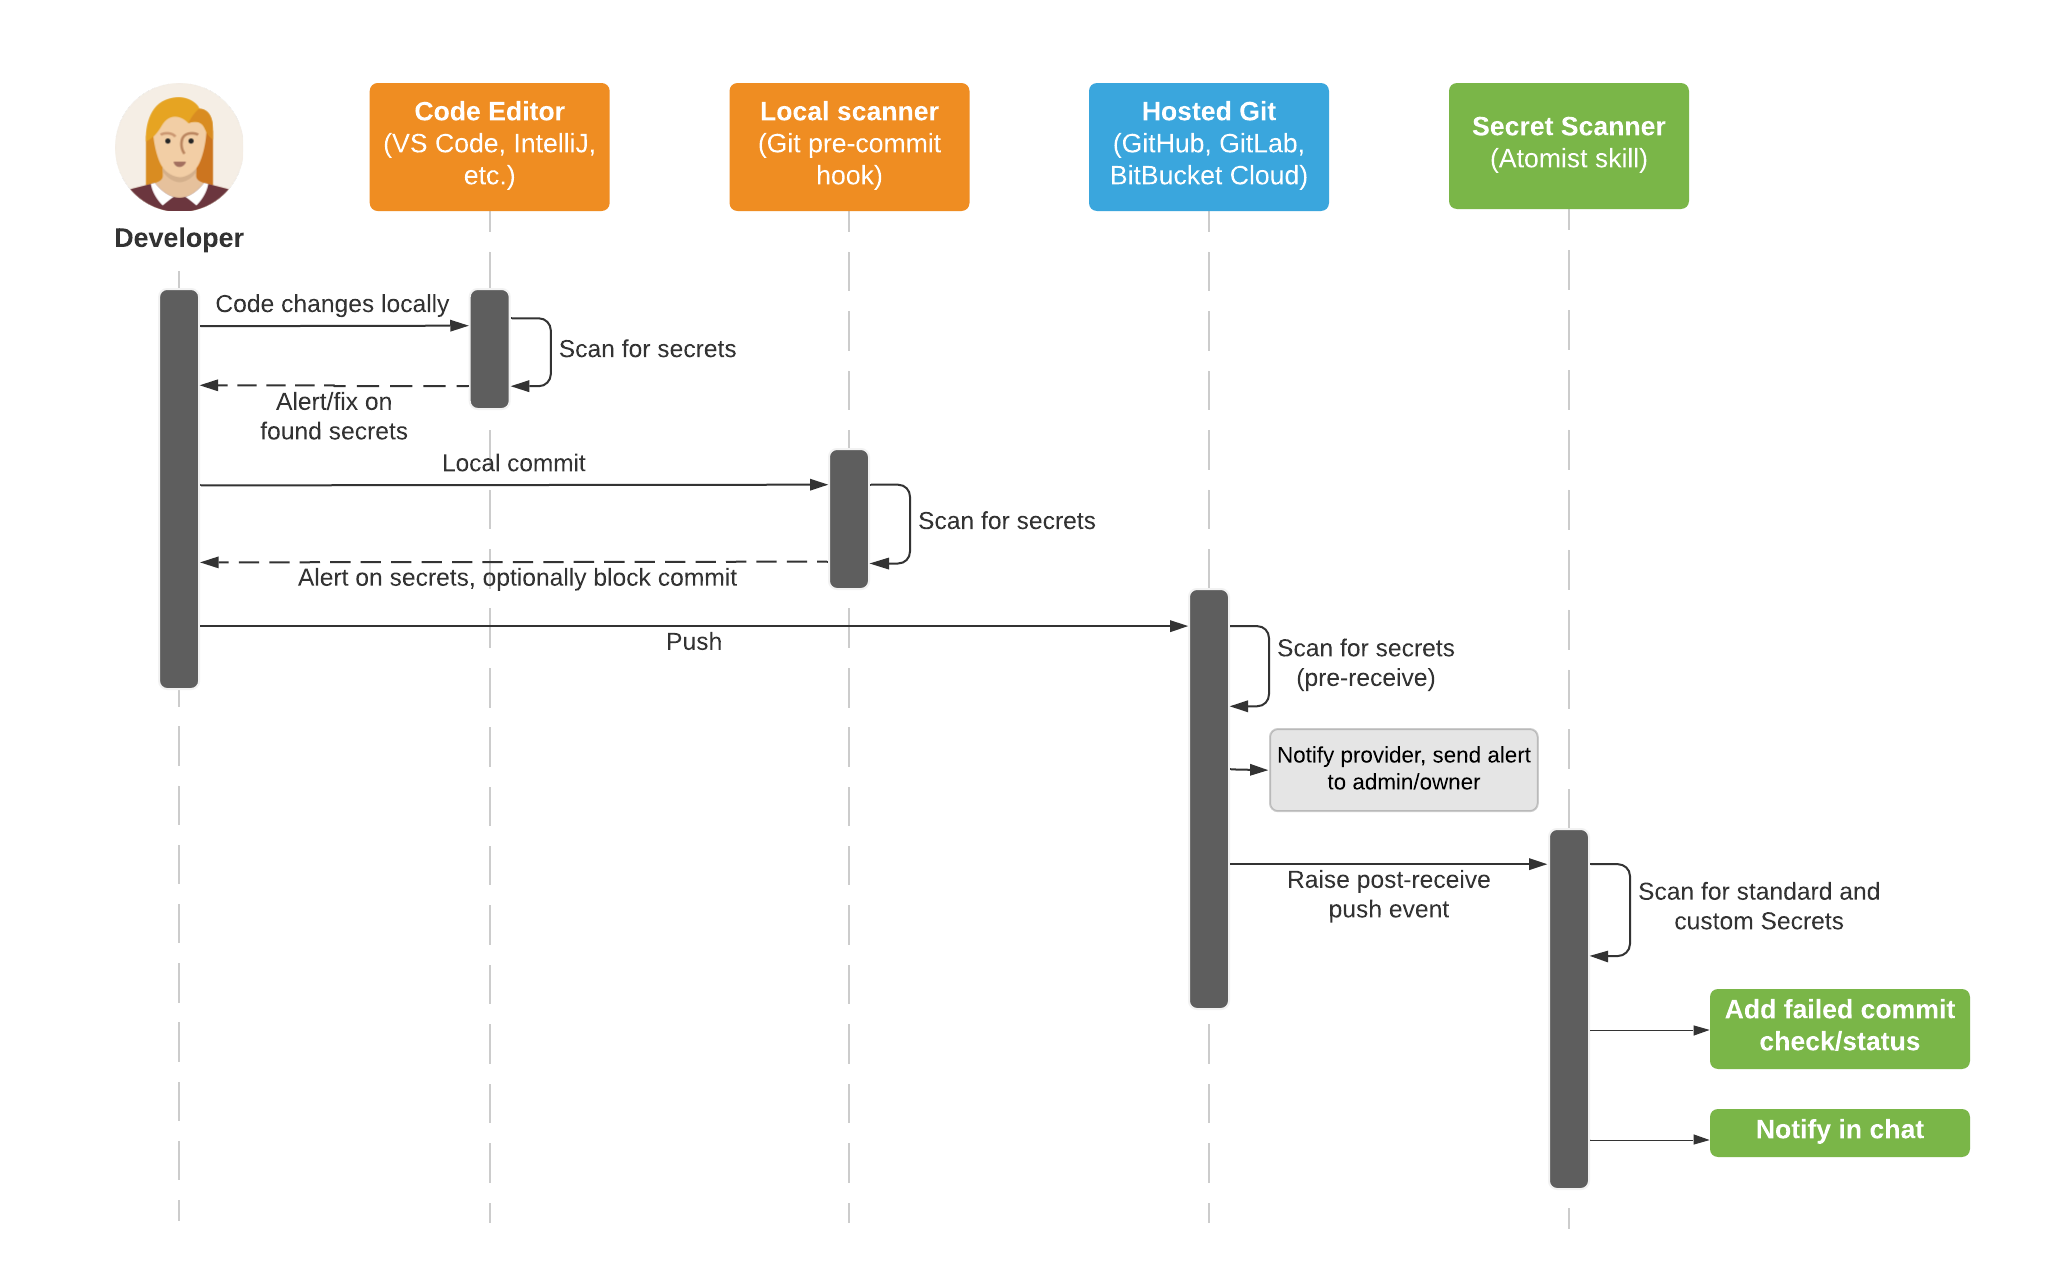 Sequence diagram of secret scanning